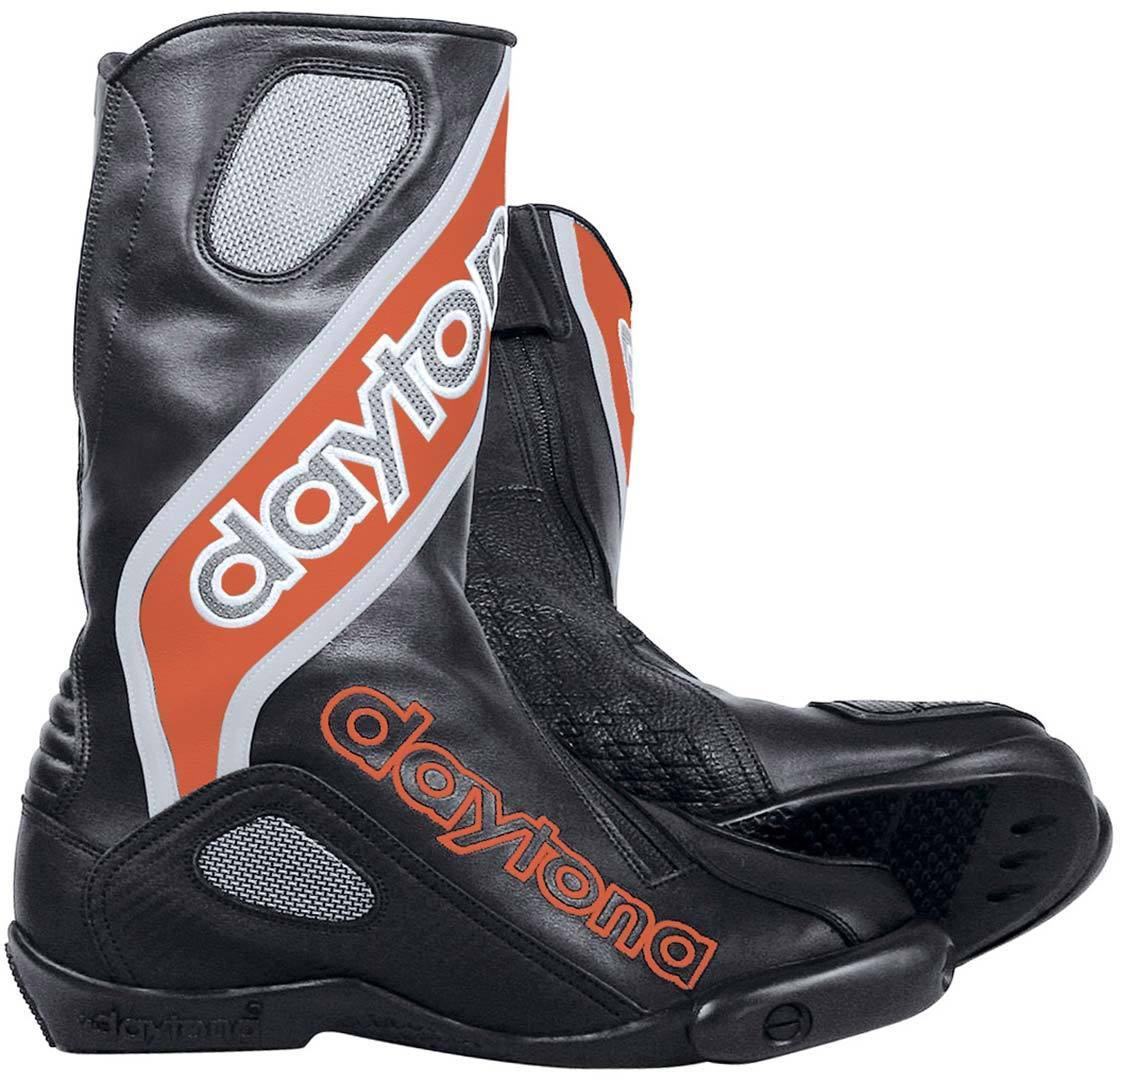 Daytona Evo-Sports GORE-TEX Motorcycle Boots - buy cheap ▷ FC-Moto